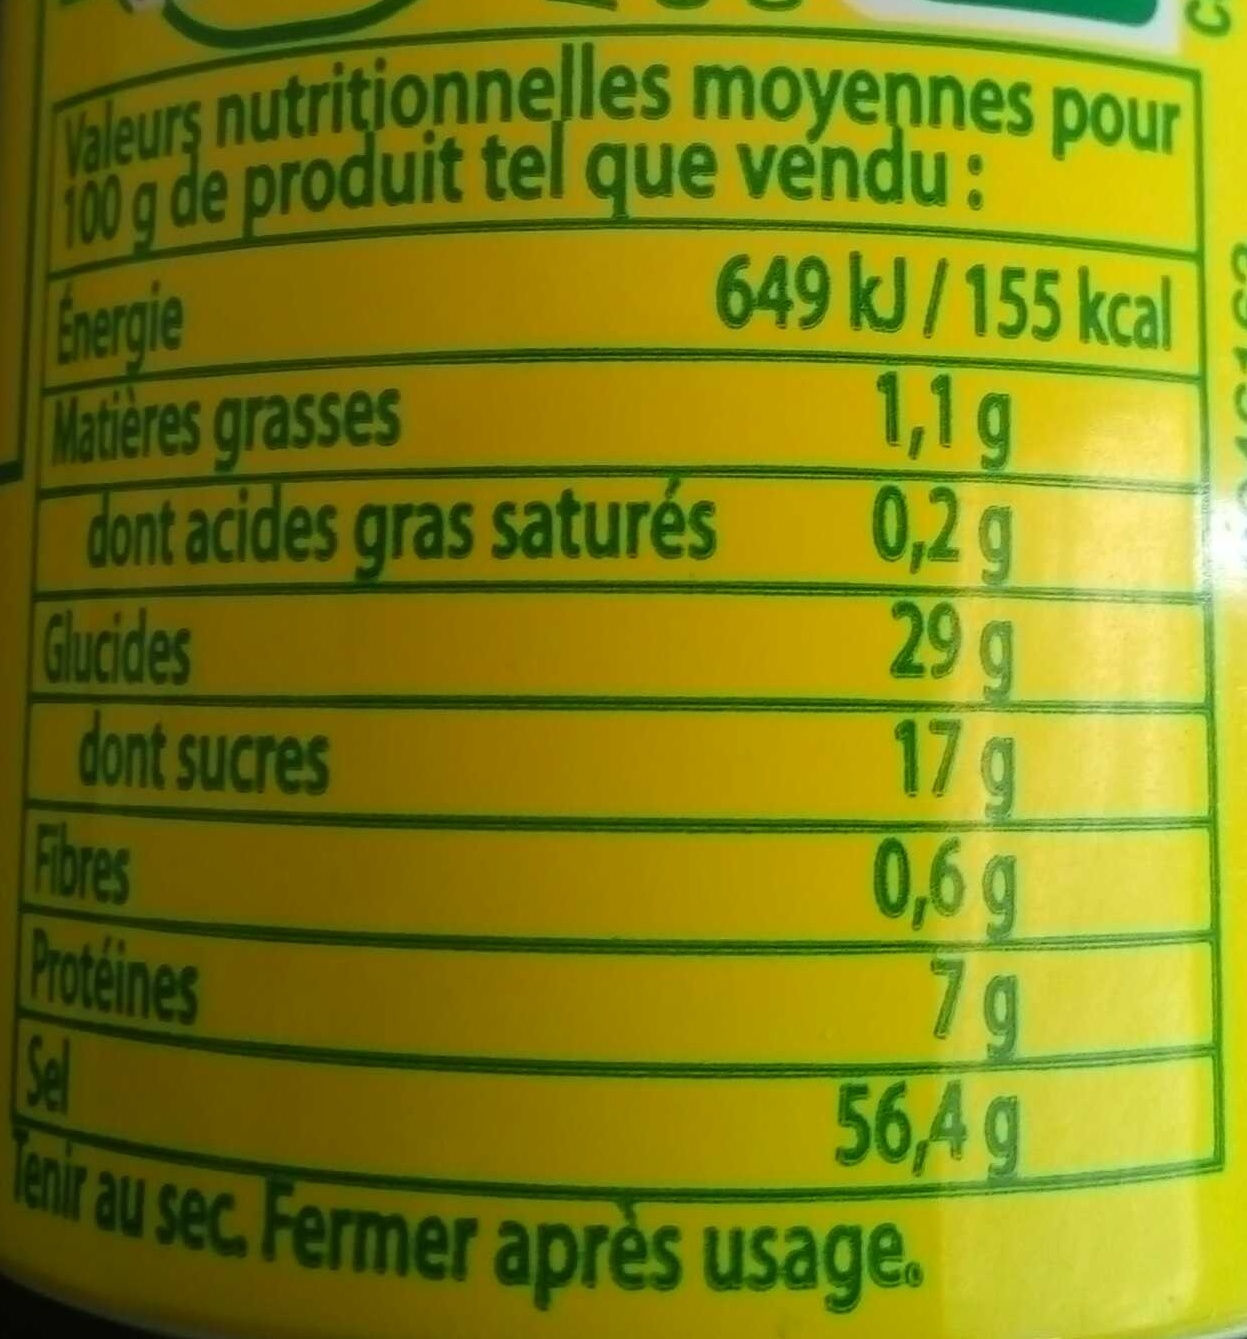 Aromat condiment - Nutrition facts